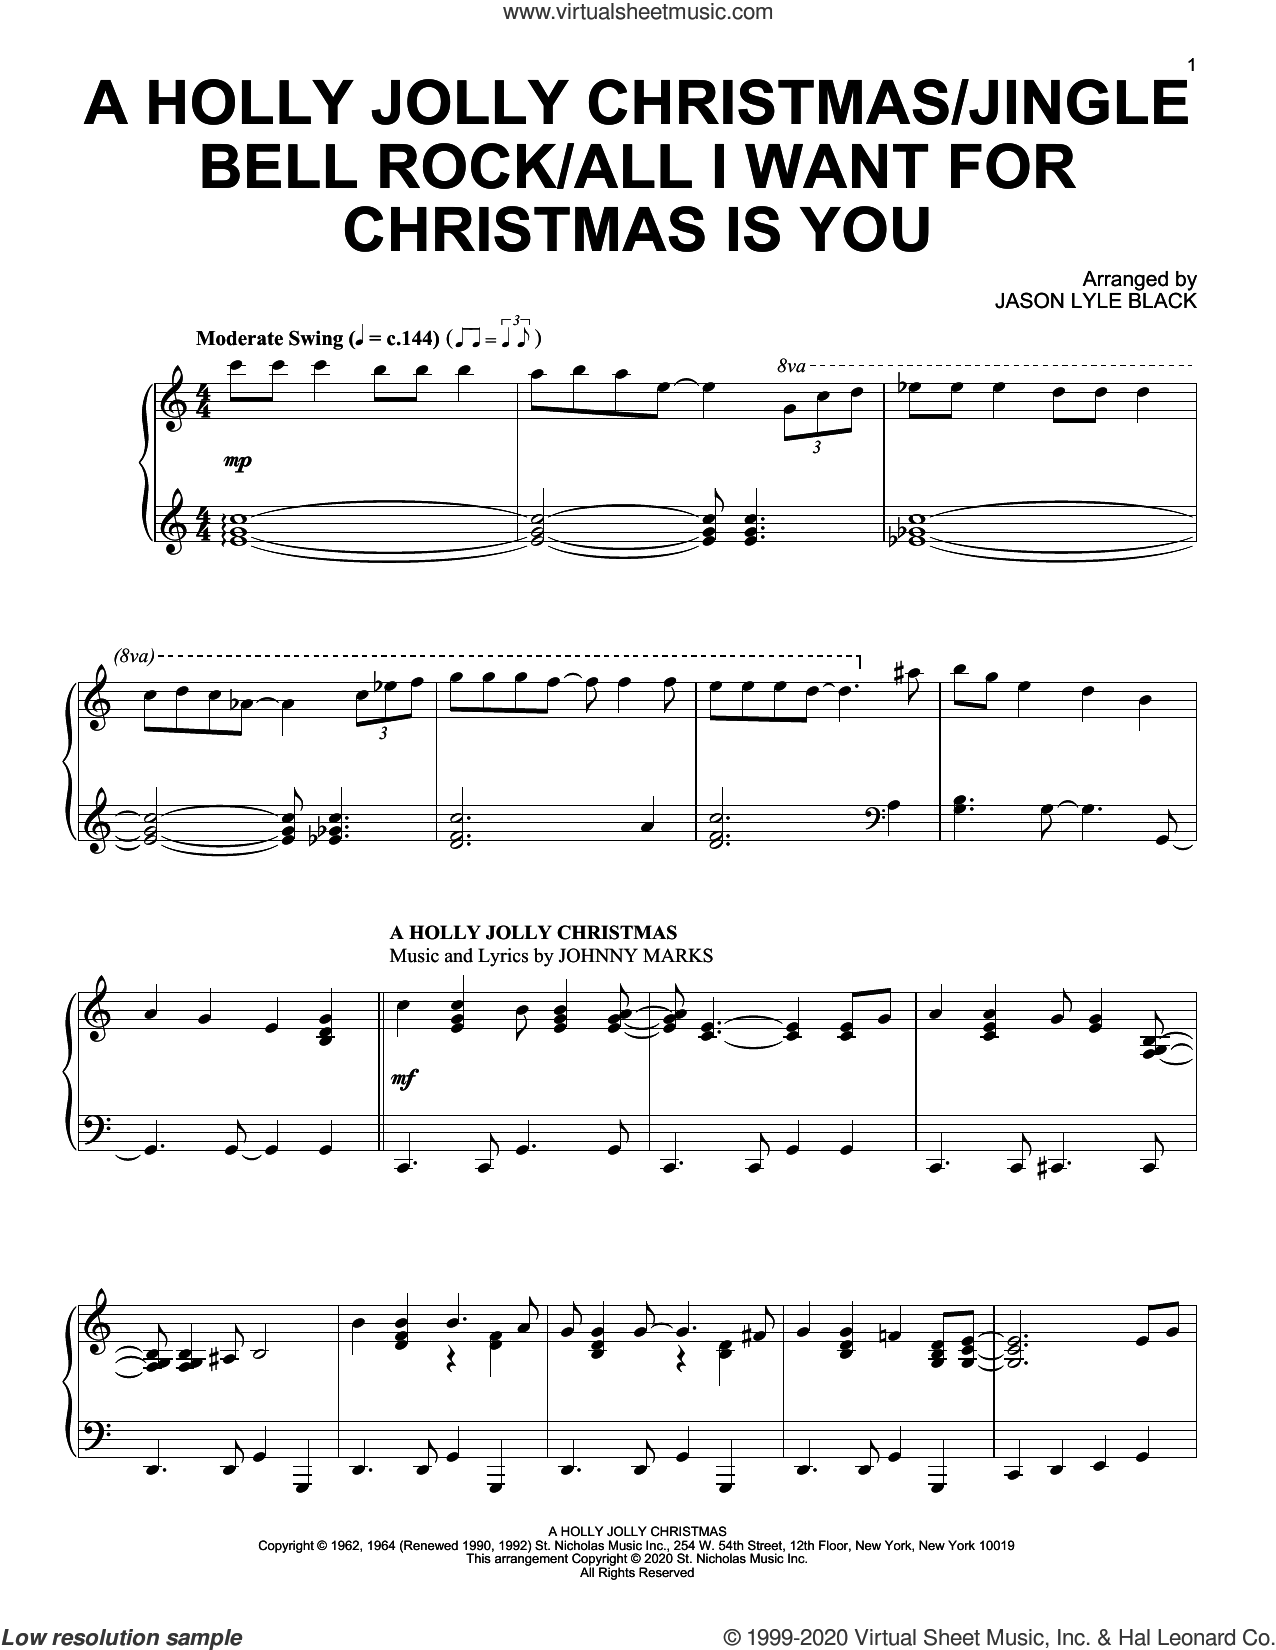 A Holly Jolly Christmas/Jingle Bell Rock/All I Want For Christmas Is You sheet music for piano solo by Johnny Marks, Jason Lyle Black, Jim Boothe, Joe Beal, Mariah Carey and Walter Afanasieff, intermediate skill level